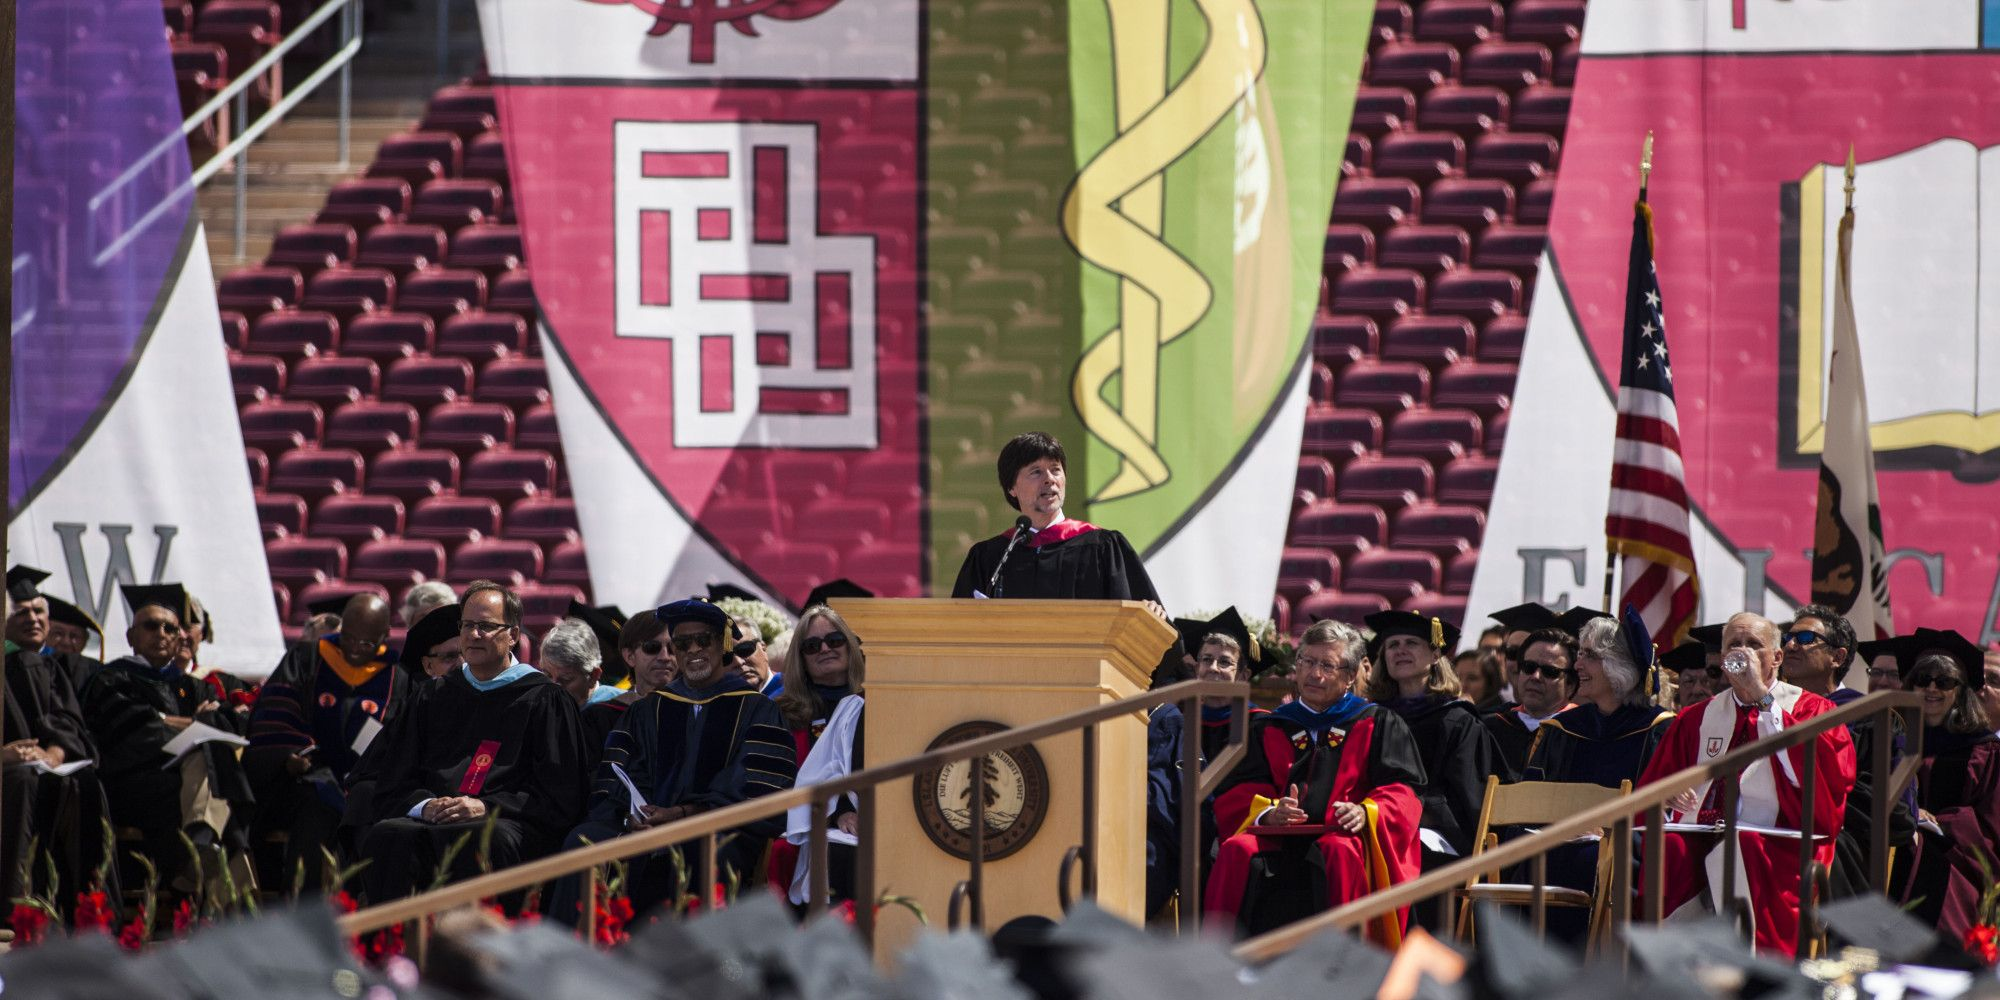 STANFORD UNIVERSITY COMMENCEMENT                                                       June 12th, 2016                                         ...